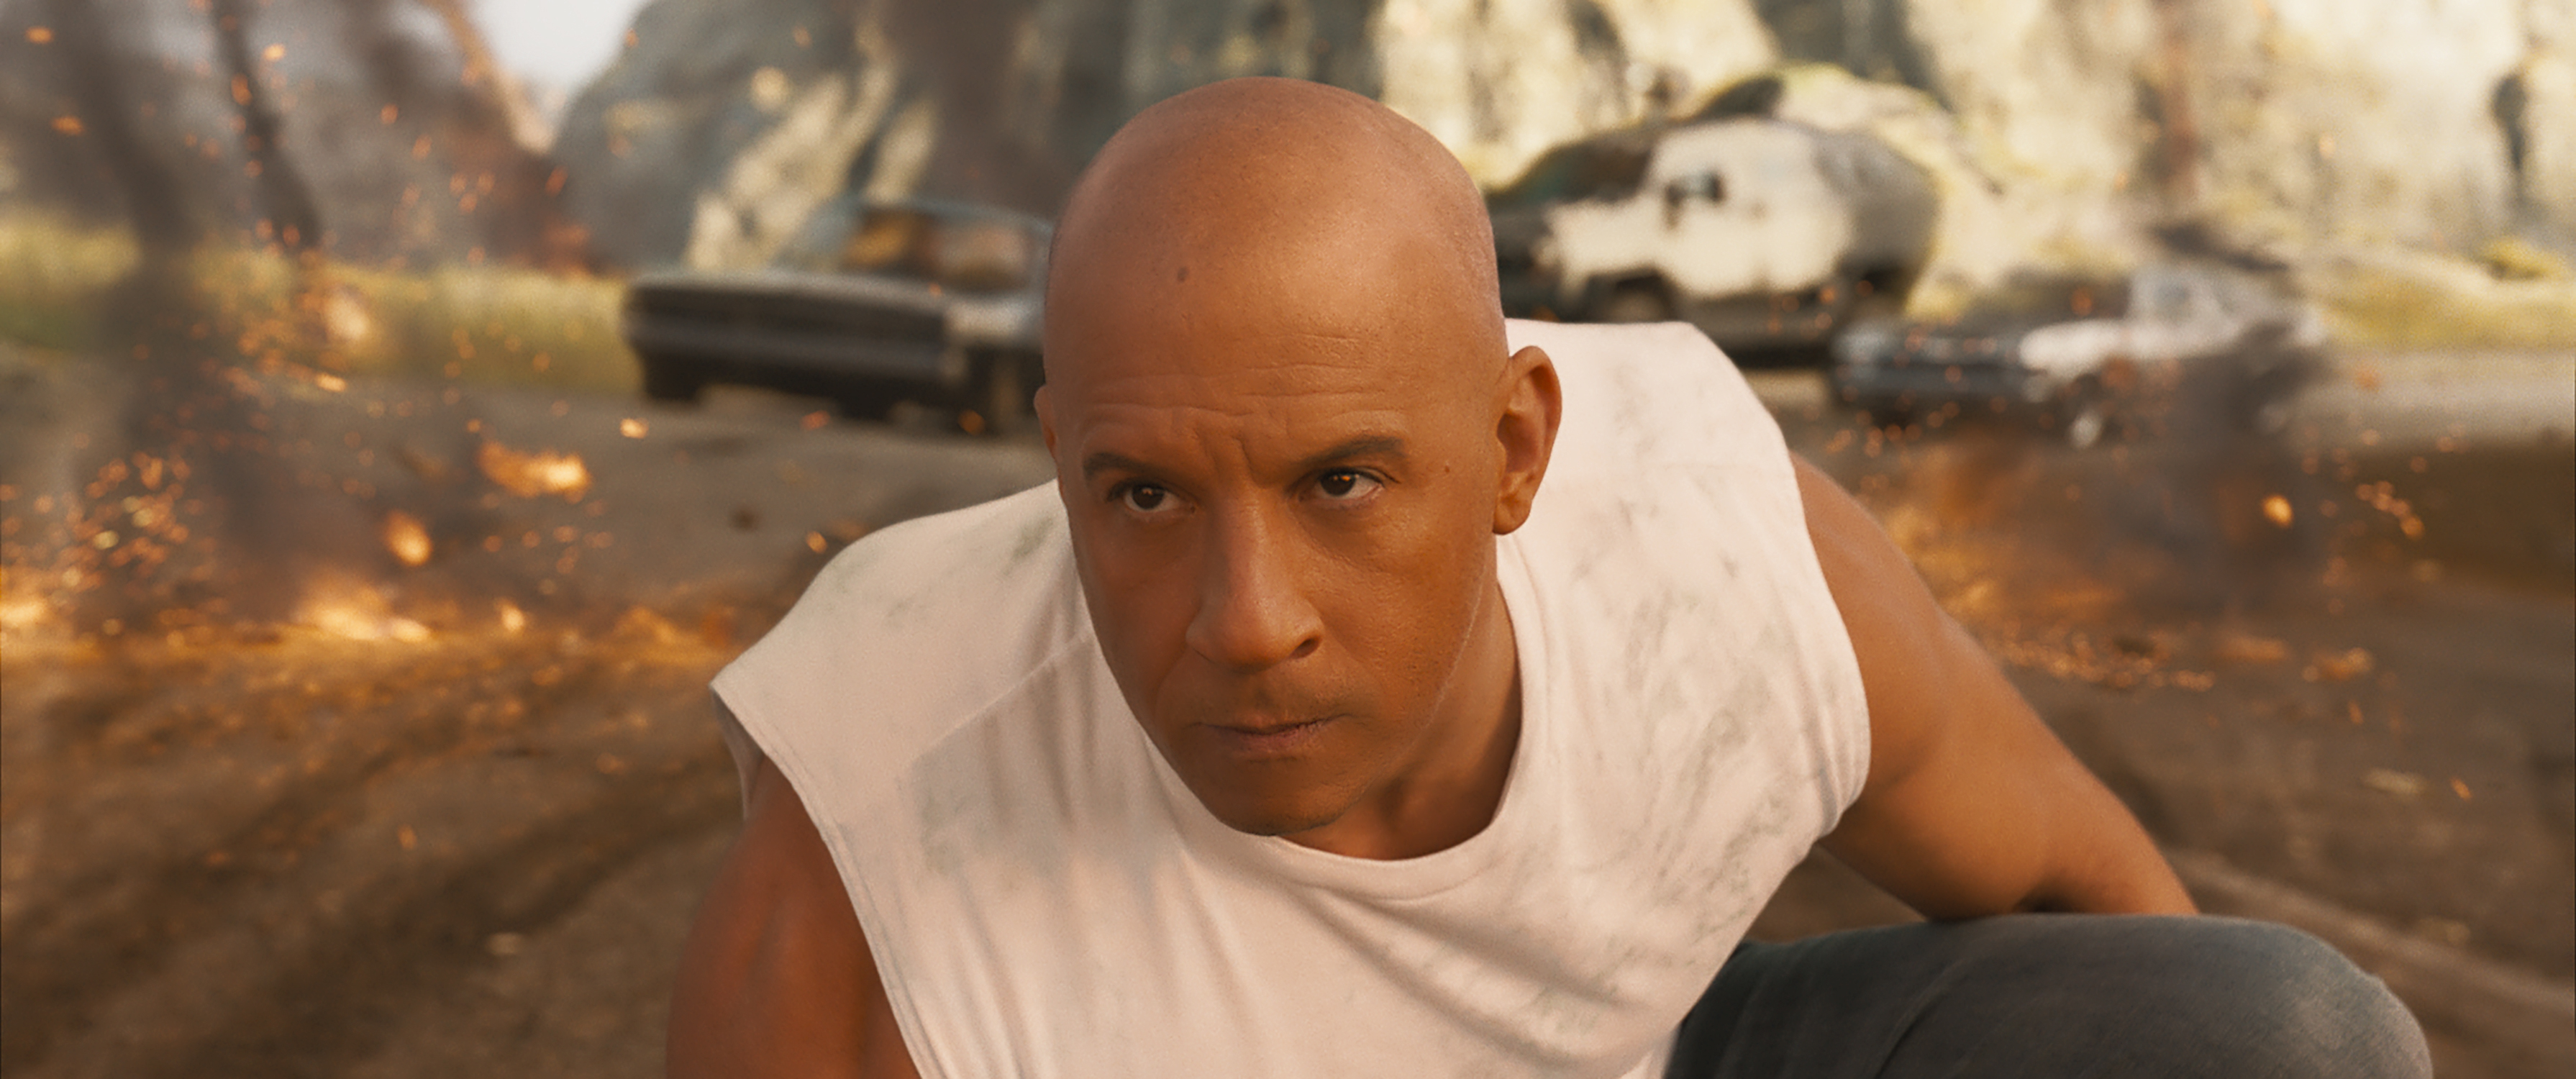 Vin Diesel stares intensely into the distance.